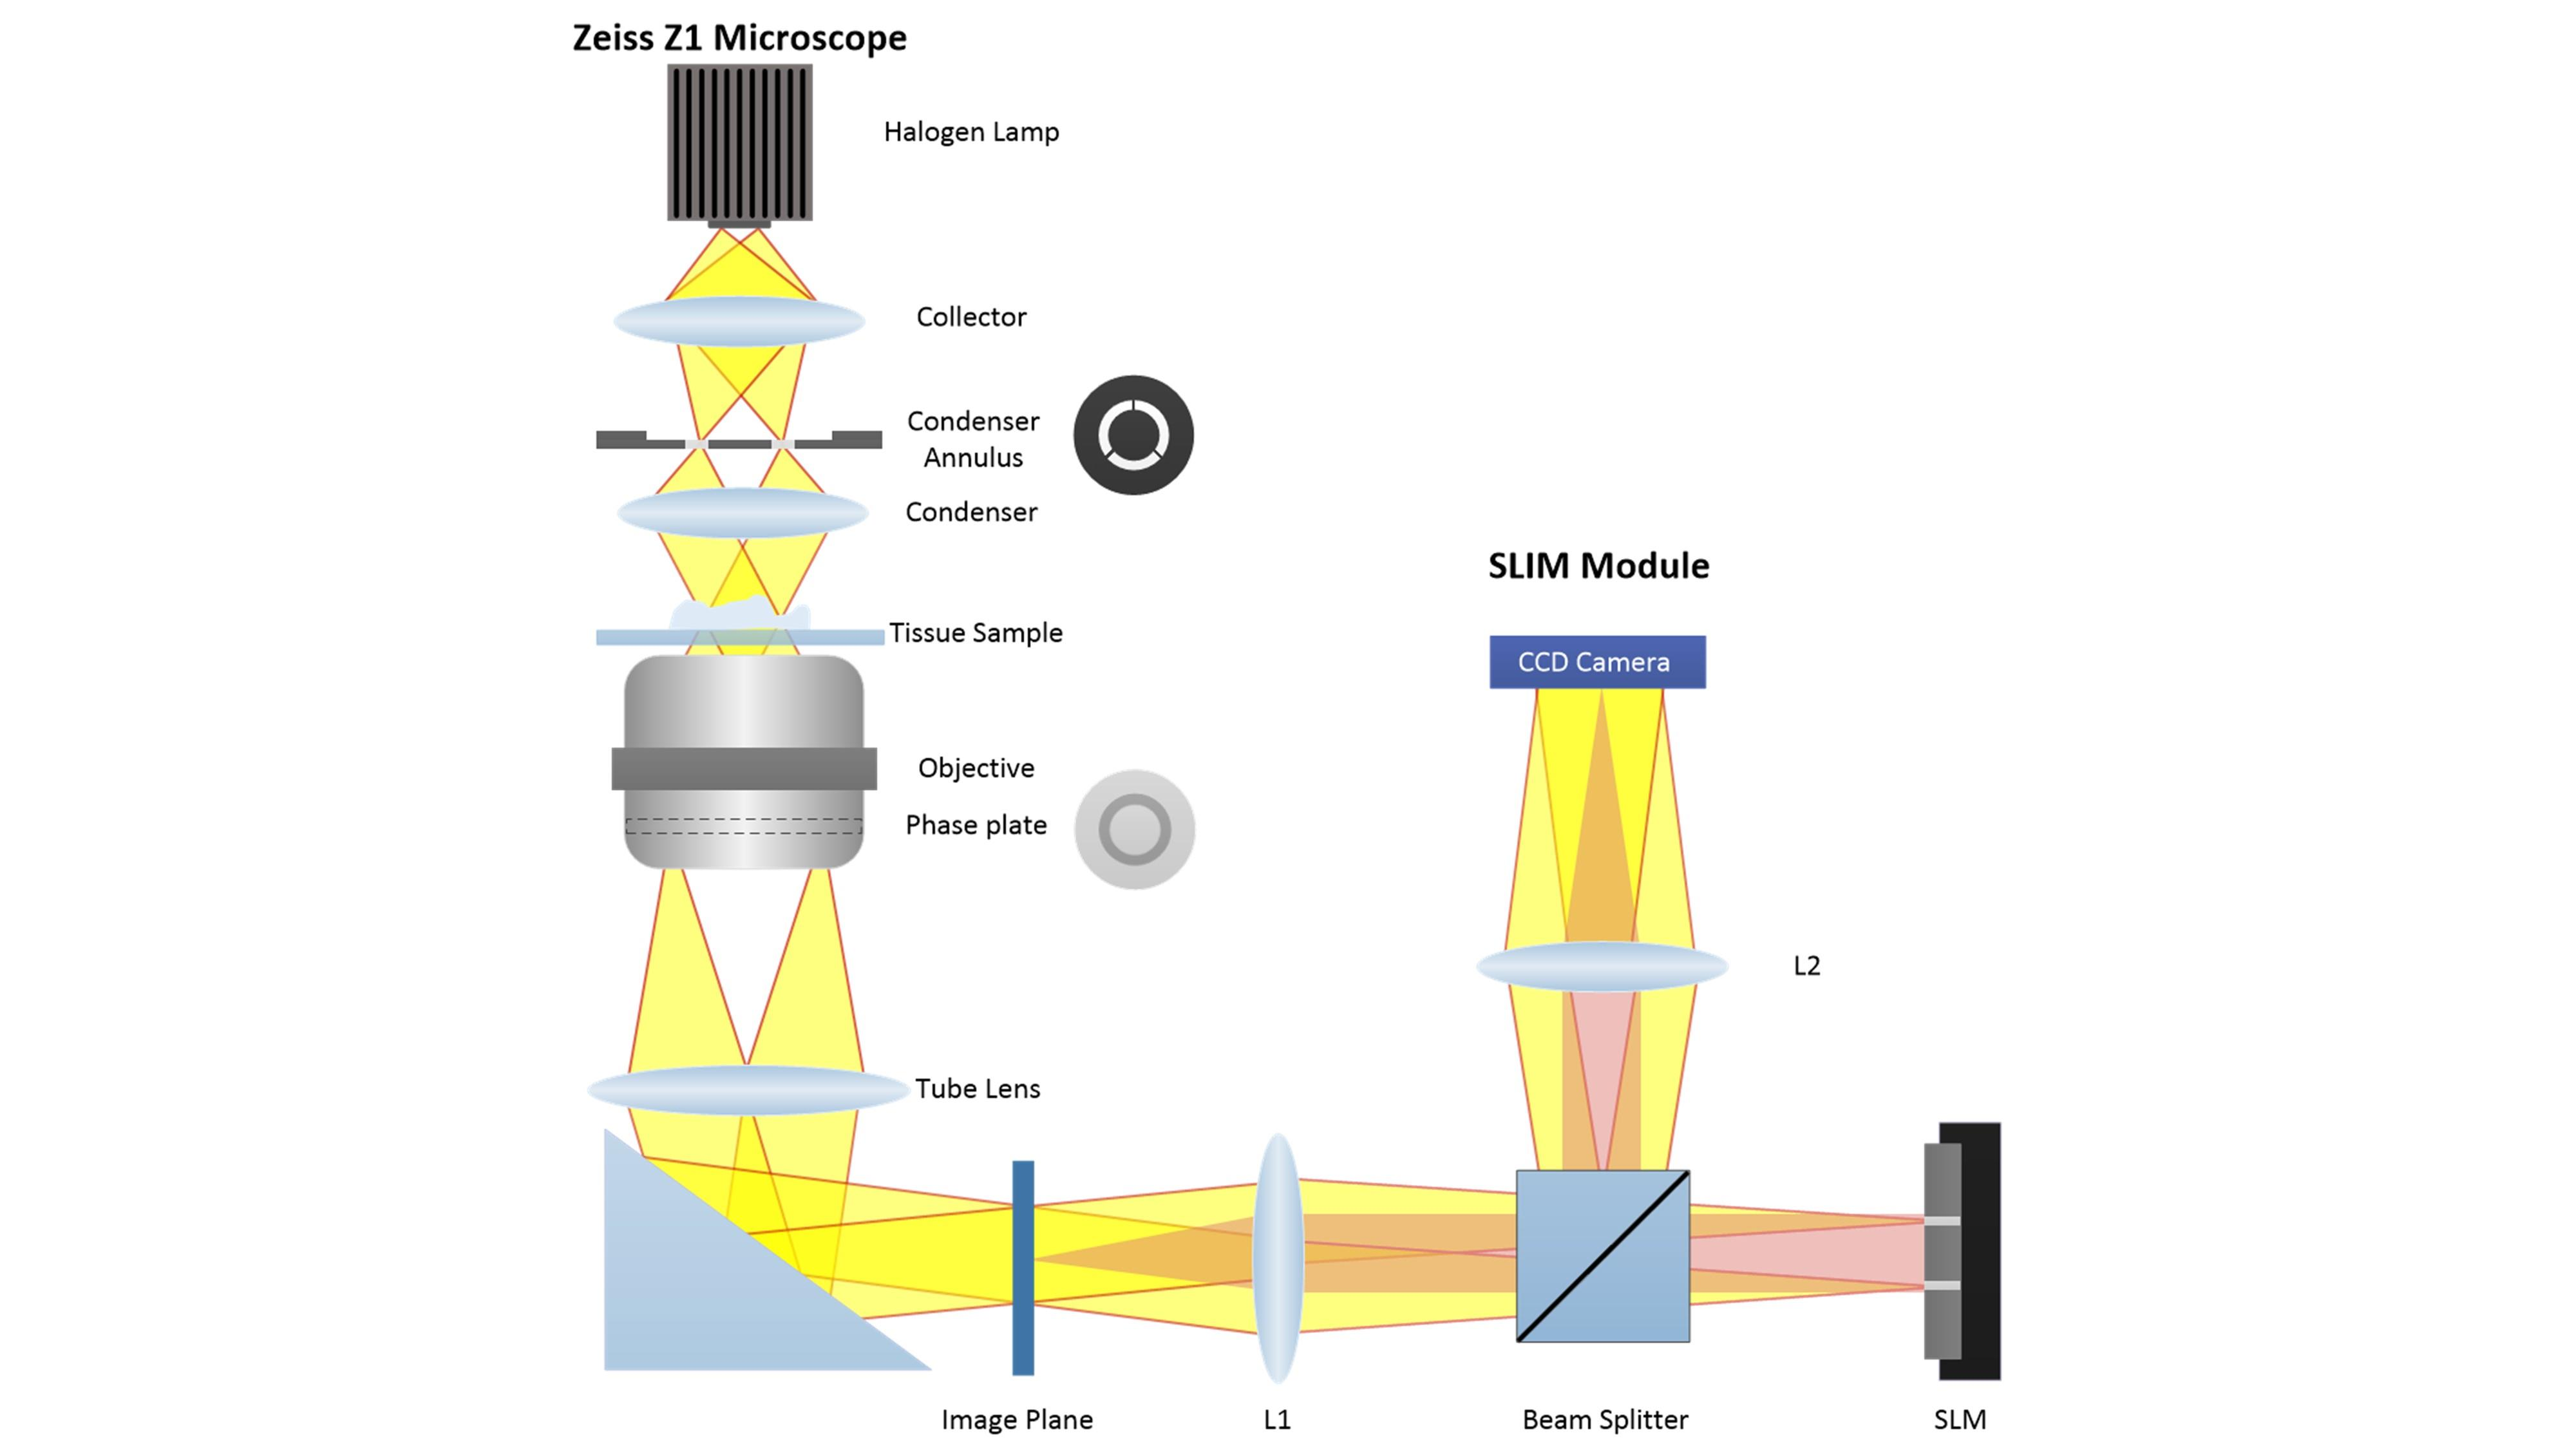 This invention uses an interferometer, which uses two beams of light, one that is kept as a reference and one that, when it goes through a sample, is modified.